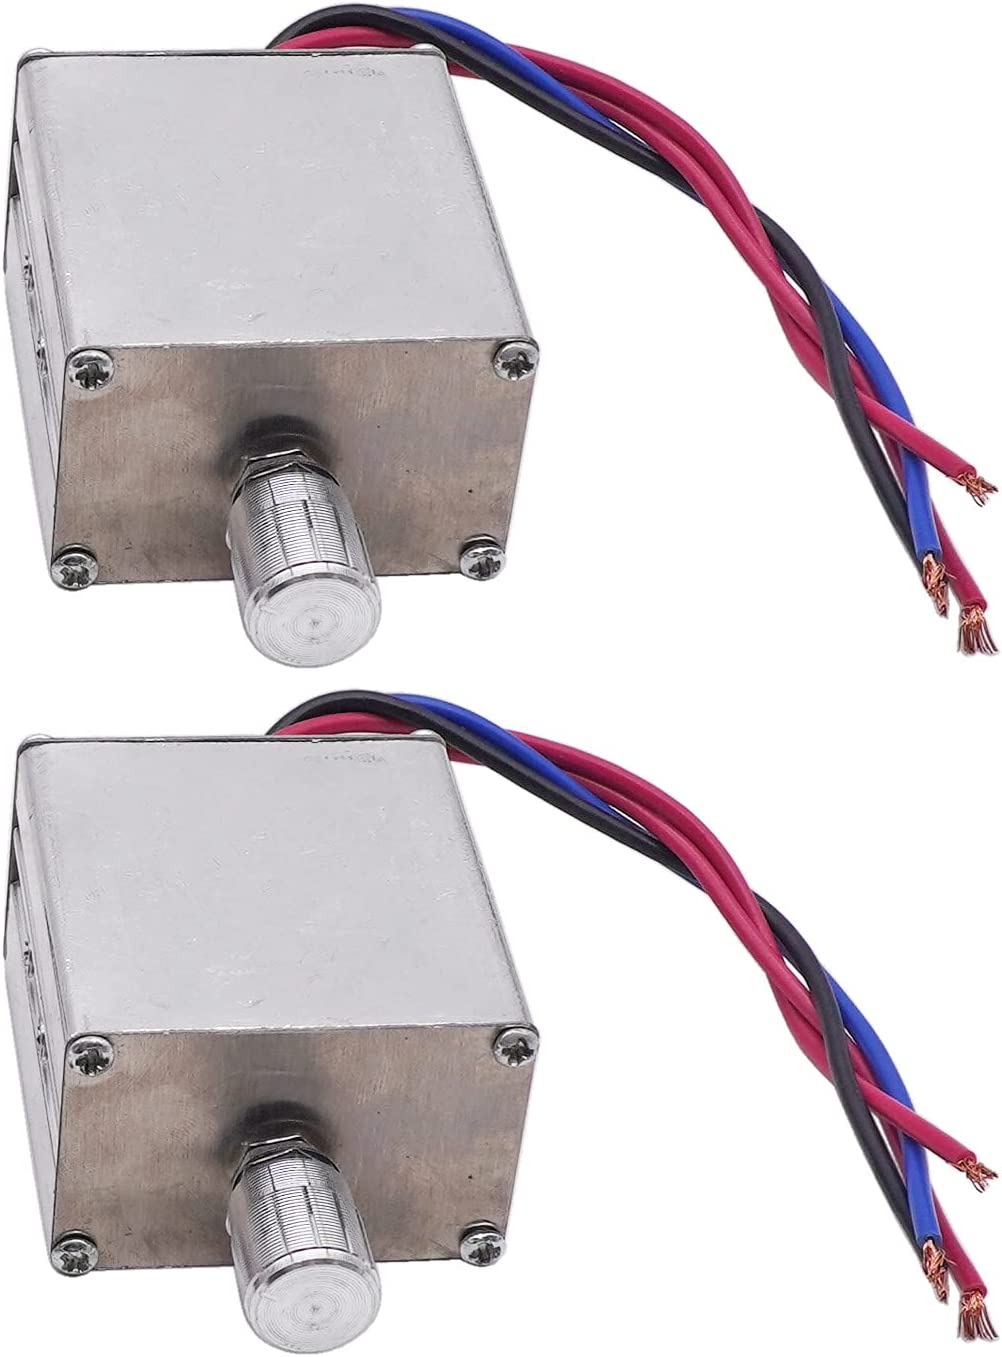 AIB2C DC Motor Speed Electronic Controller with 5 ☆ New products, world's highest quality popular! very popular Regulator